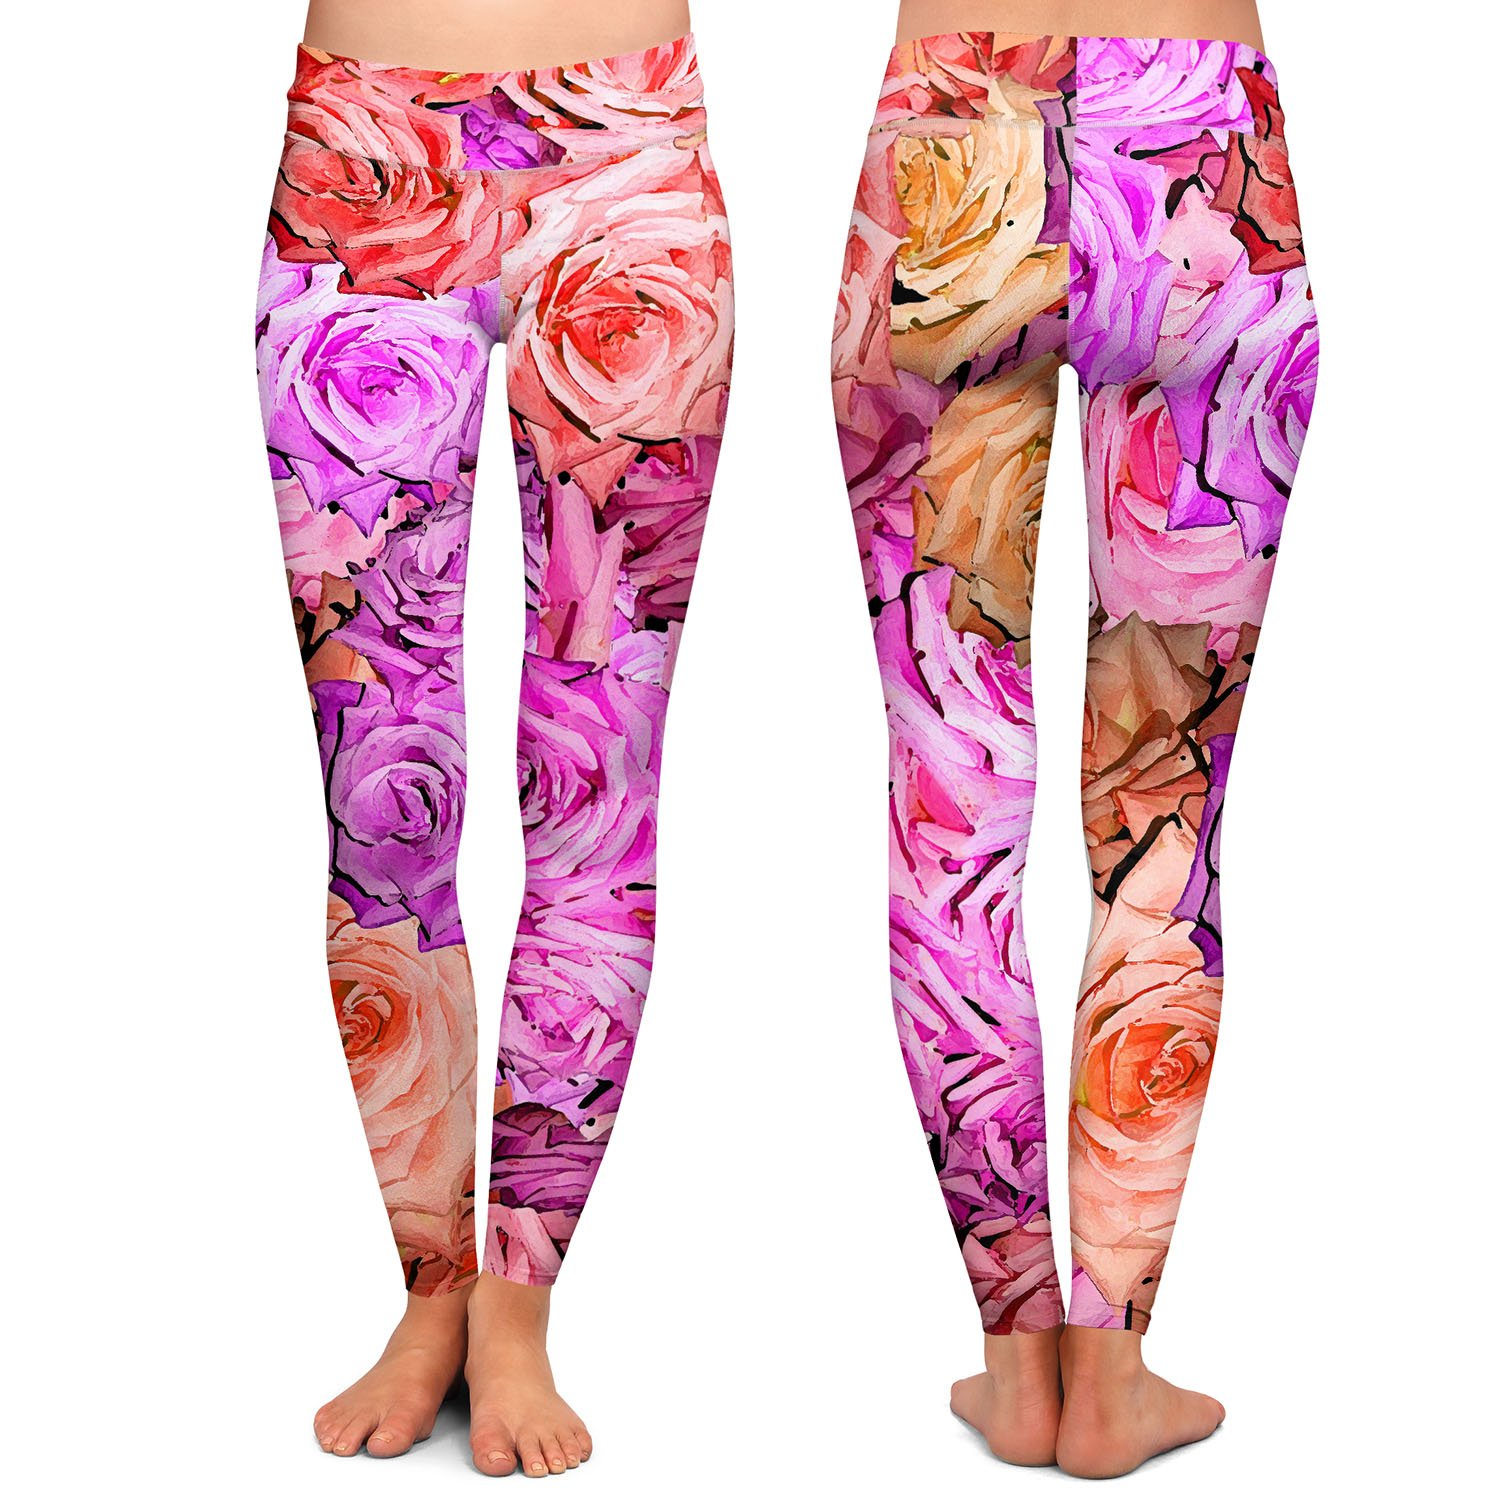 Athletic Yoga Leggings from DiaNoche Designs by Susie Kunzelman Roses Pinks Salmon